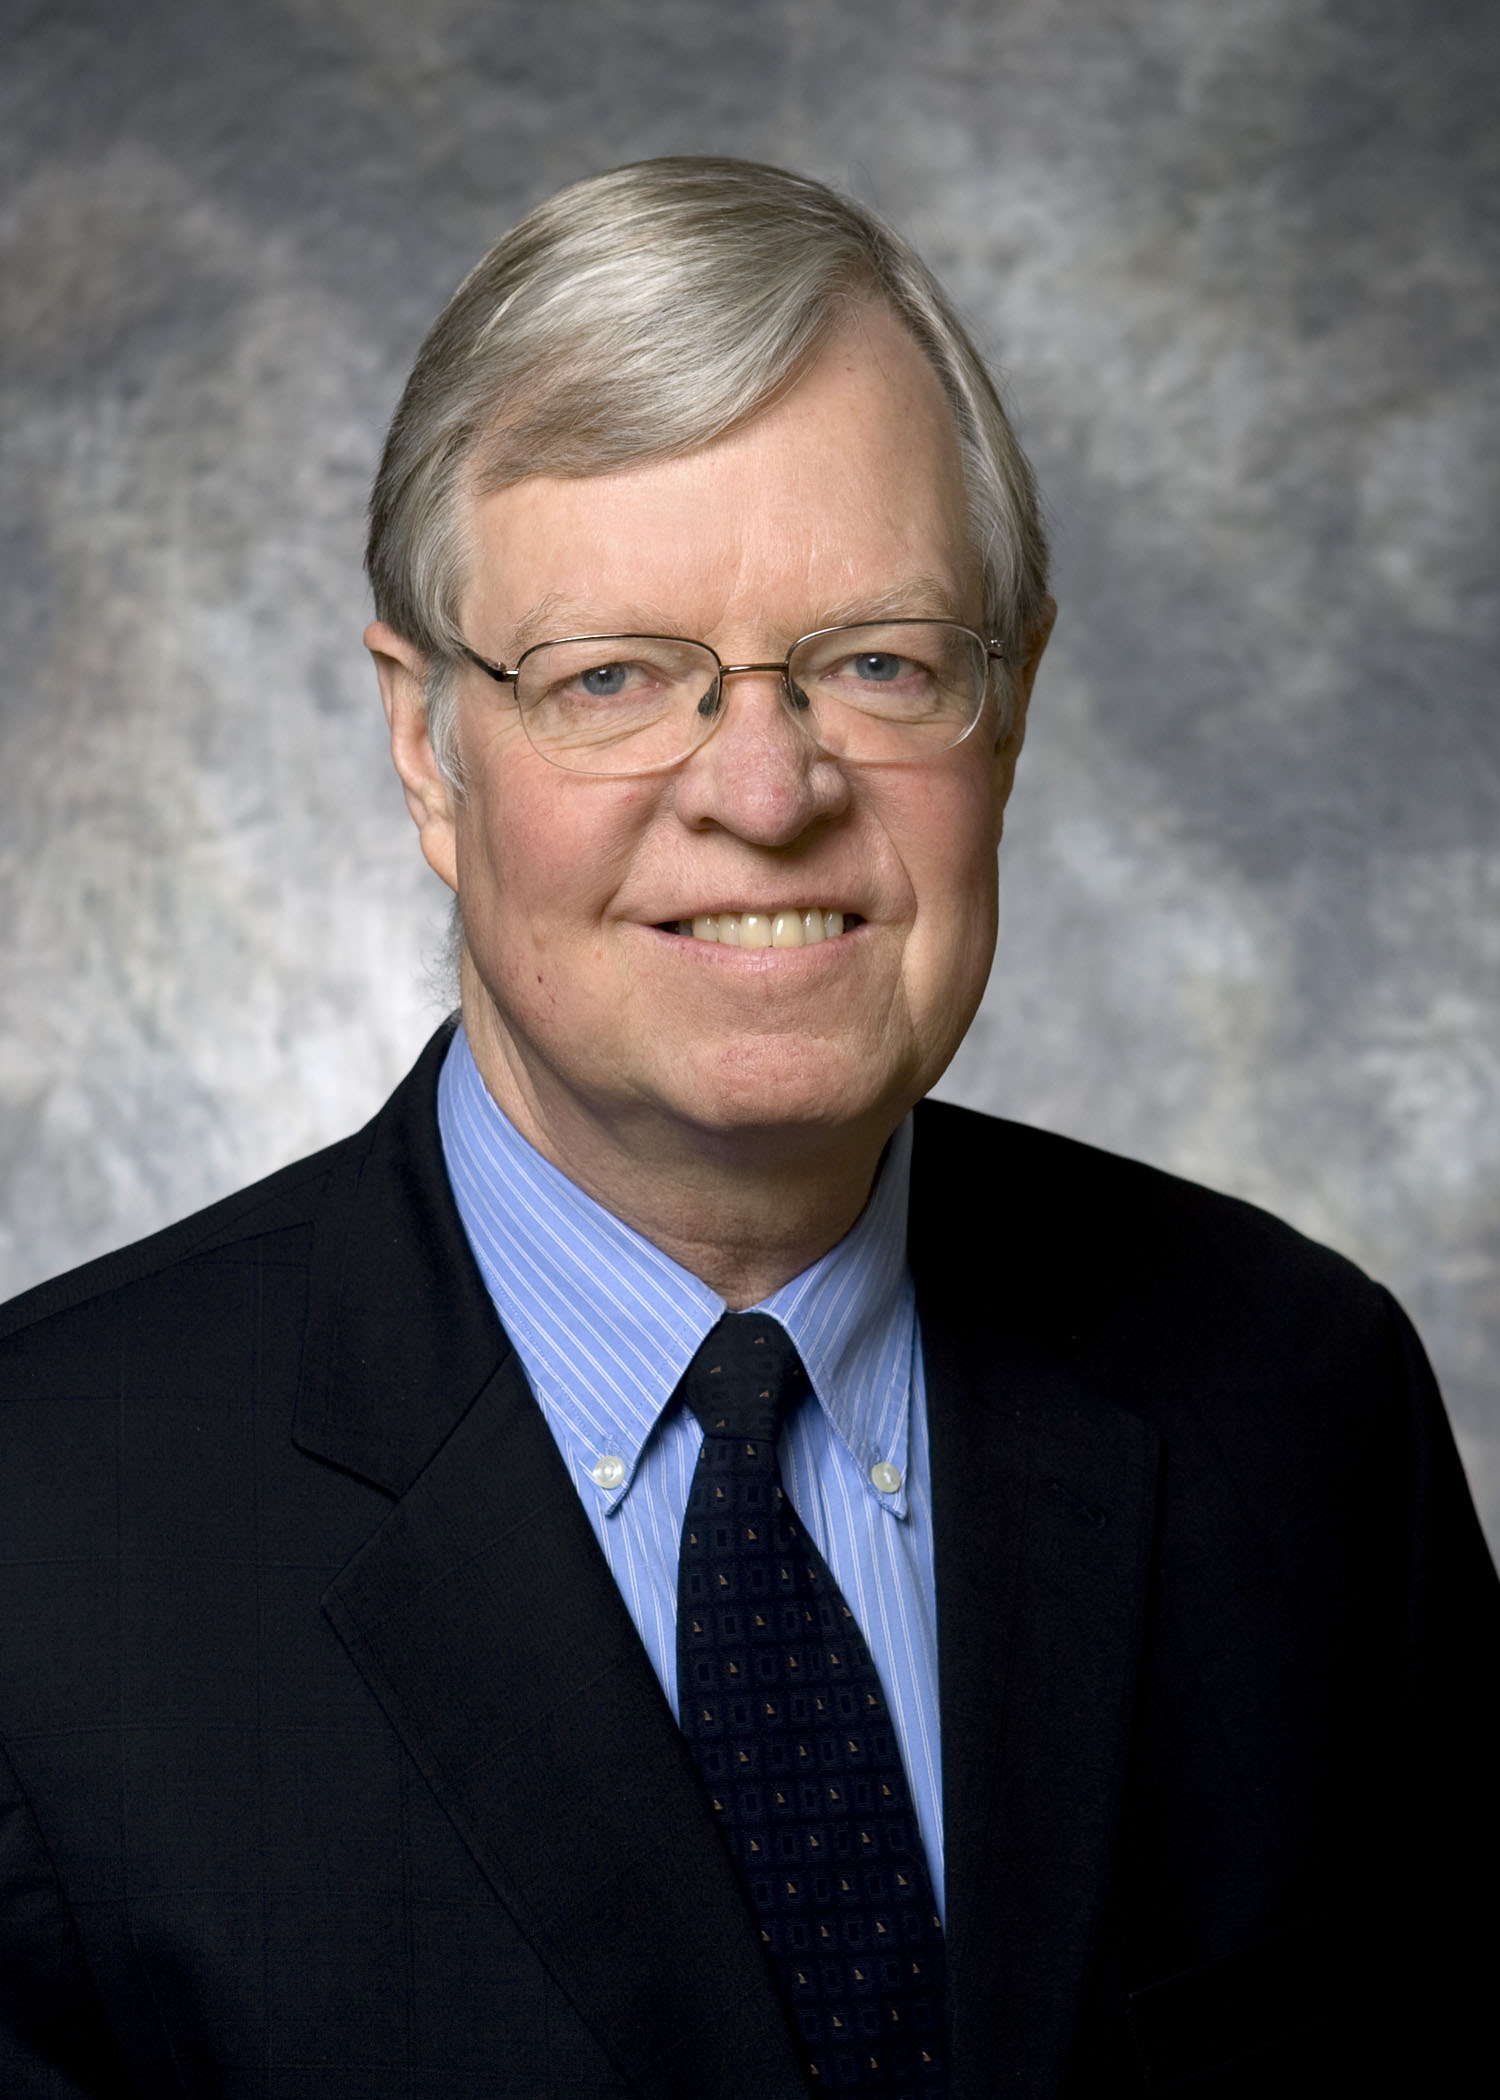 Robert Gleave, Ph.D., ABGP, CGP